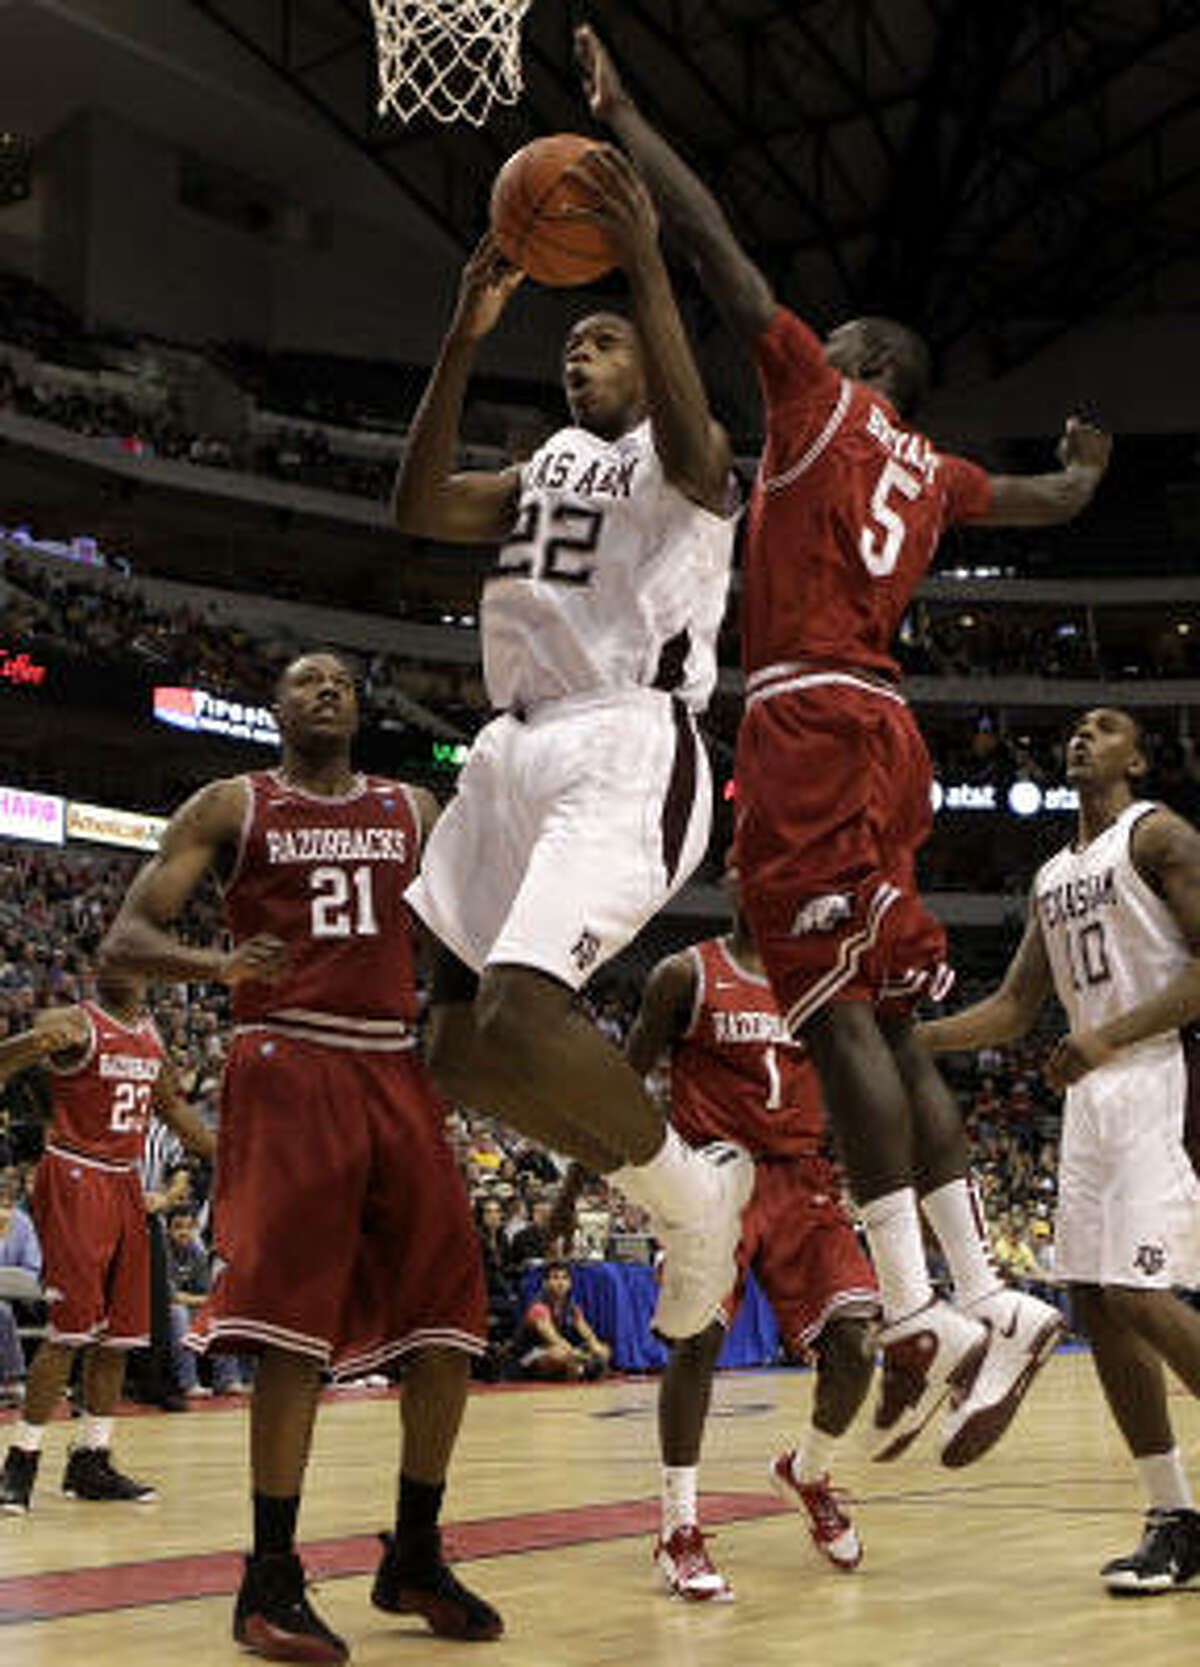 Texas A&M forward Khris Middleton drives to the basket past Arkansas forwards Delvon Johnson (21) and Glenn Bryant (5).